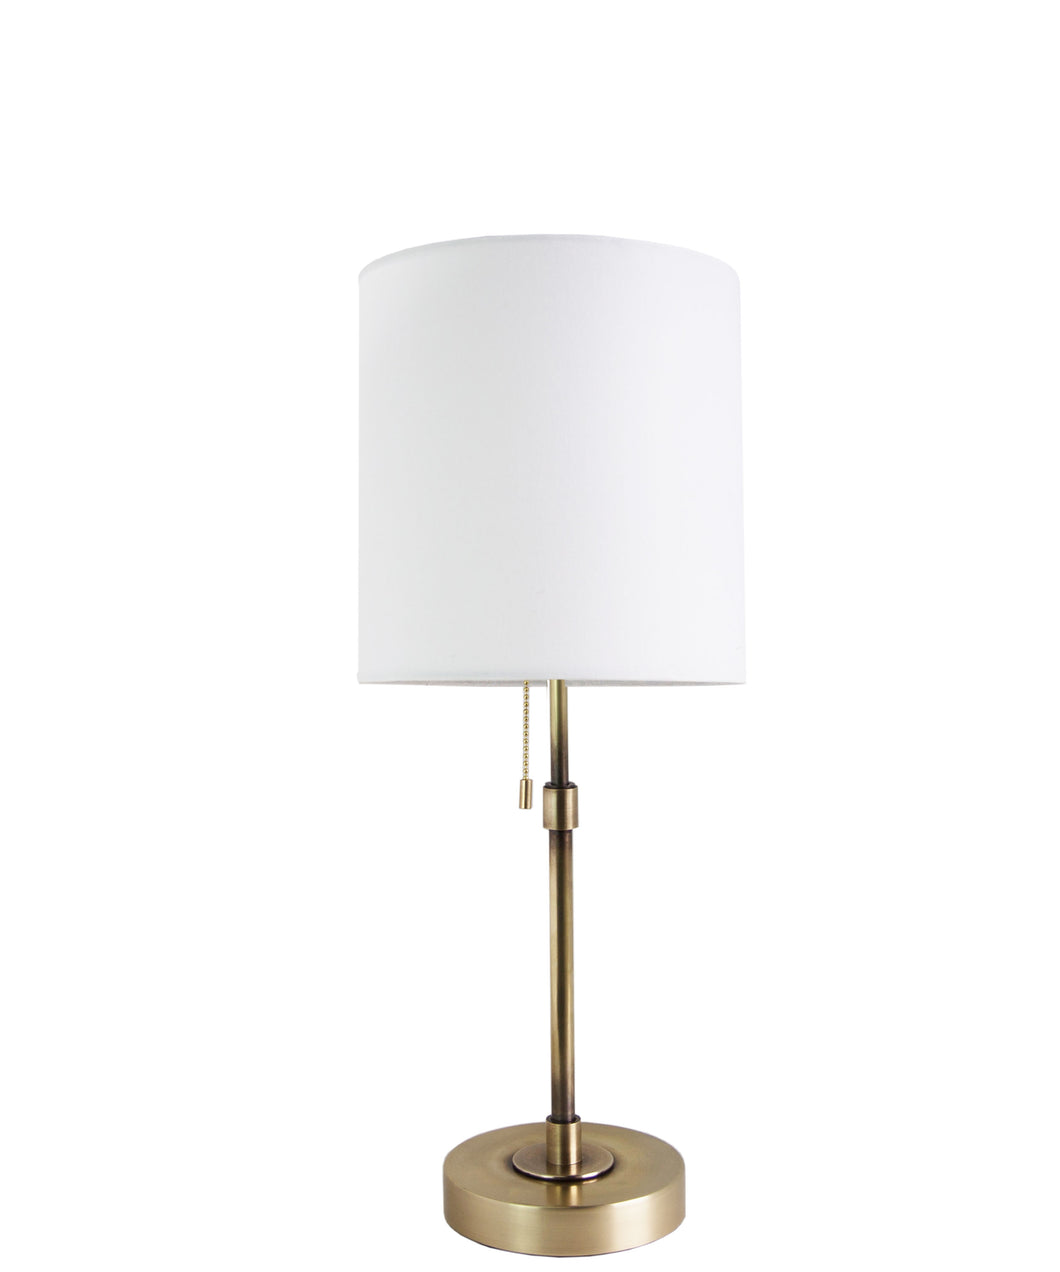 Annapolis Short Table Lamp, Antique Brass